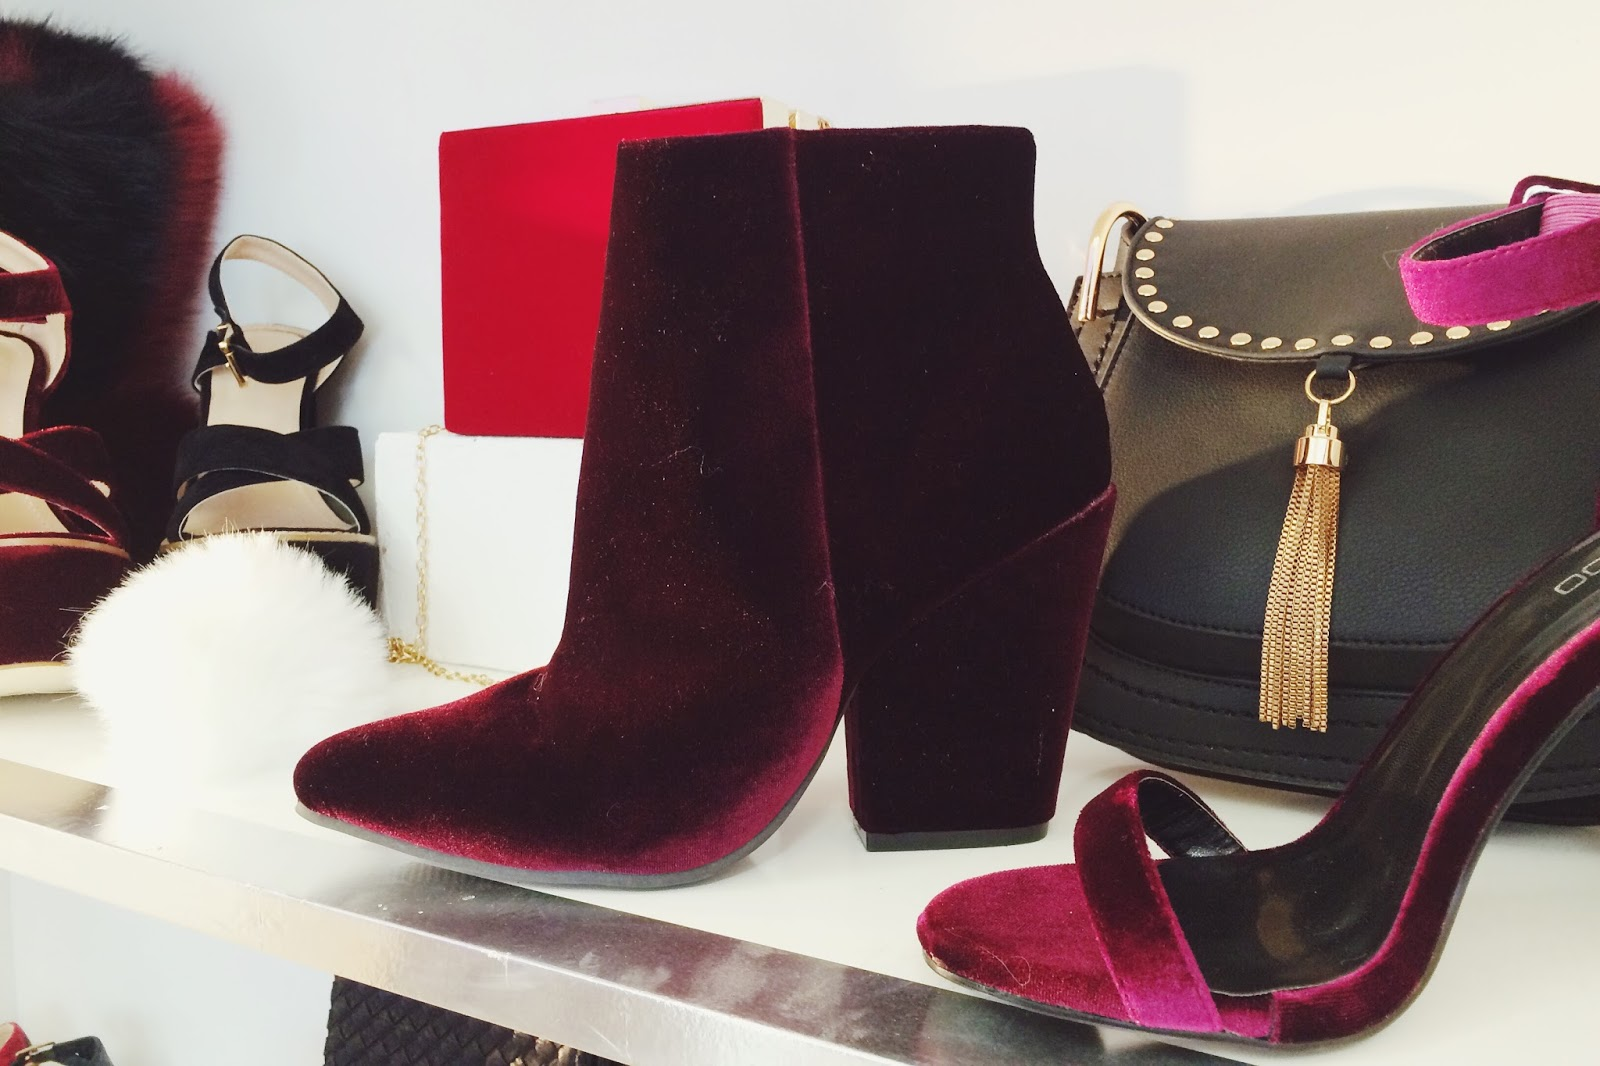 boohoo.com Christmas Collections Preview, velvet shoes